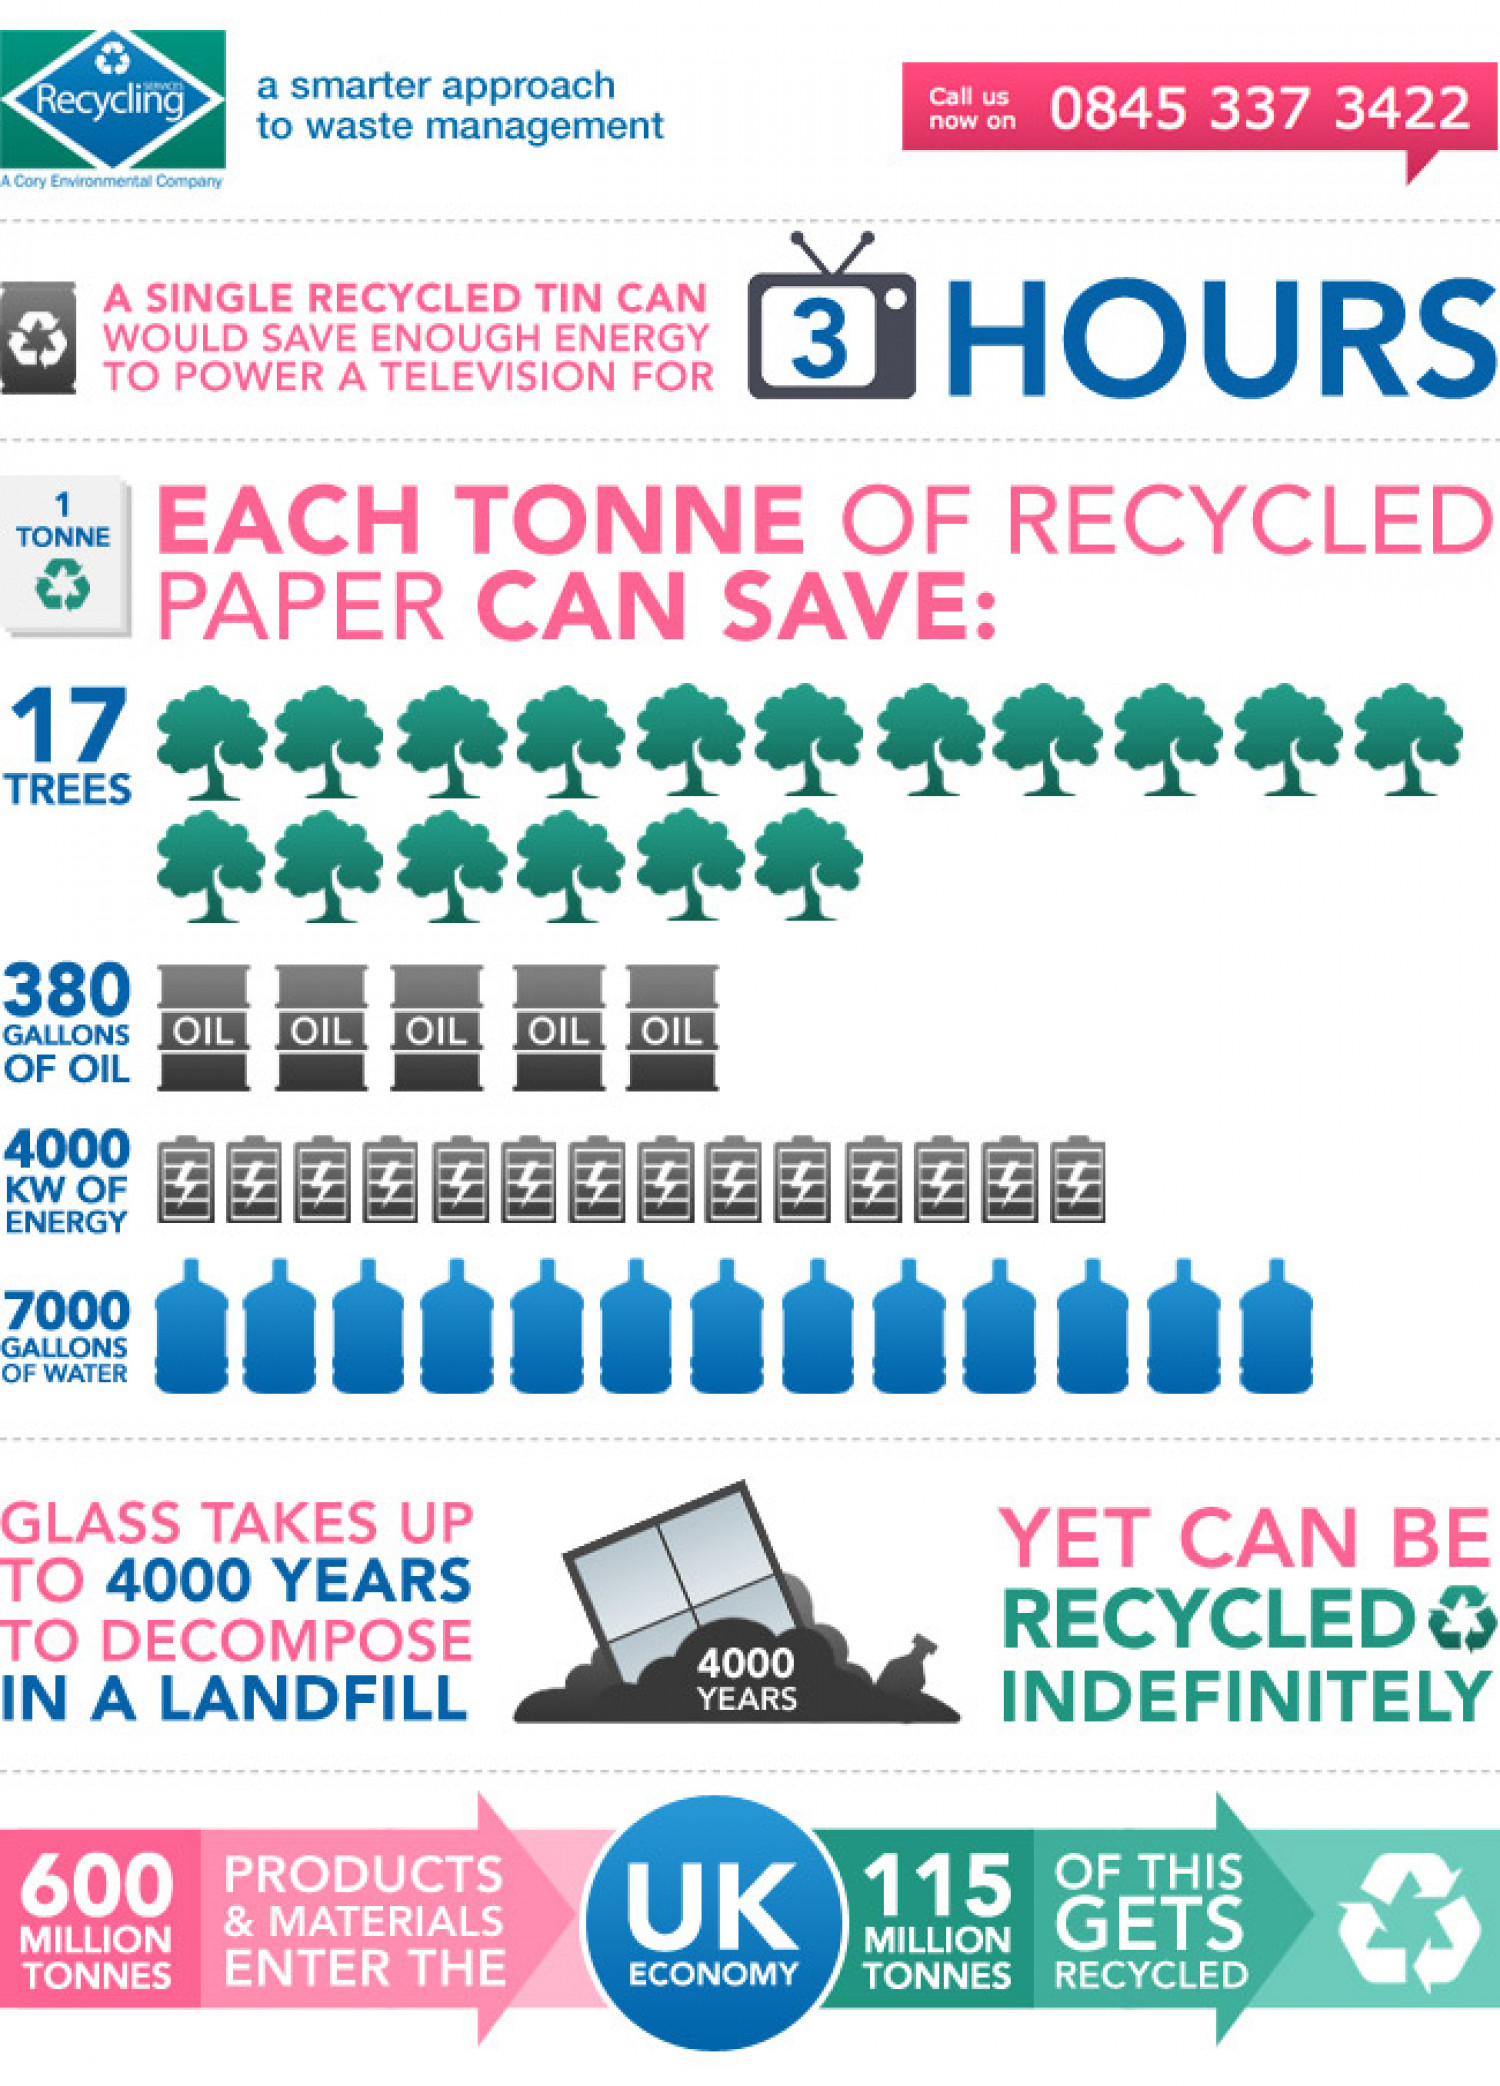 A Smarter Approach to Waste Management Infographic